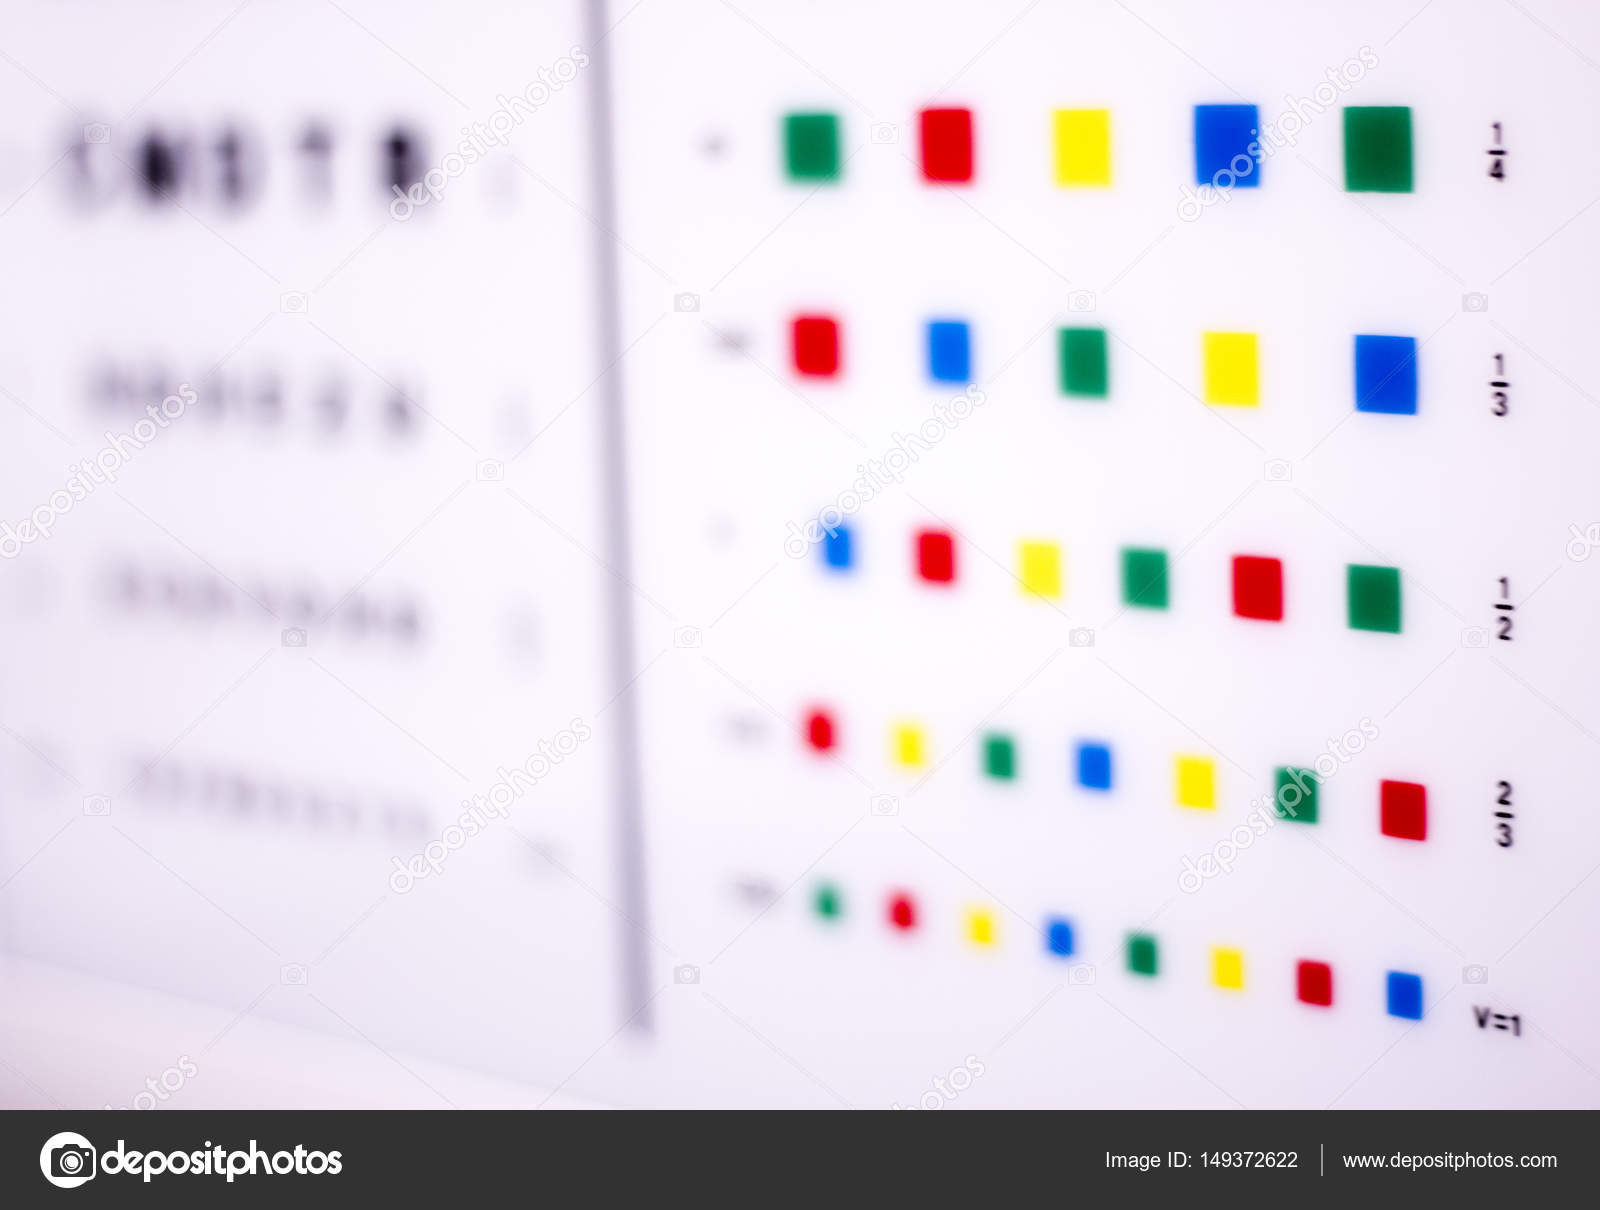 Optician eye test chart stock photo edwardolive 149372622 opticians ophthalmology and optometry eye test chart to test sight and vision for patients with eyesight issues photo by edwardolive geenschuldenfo Image collections